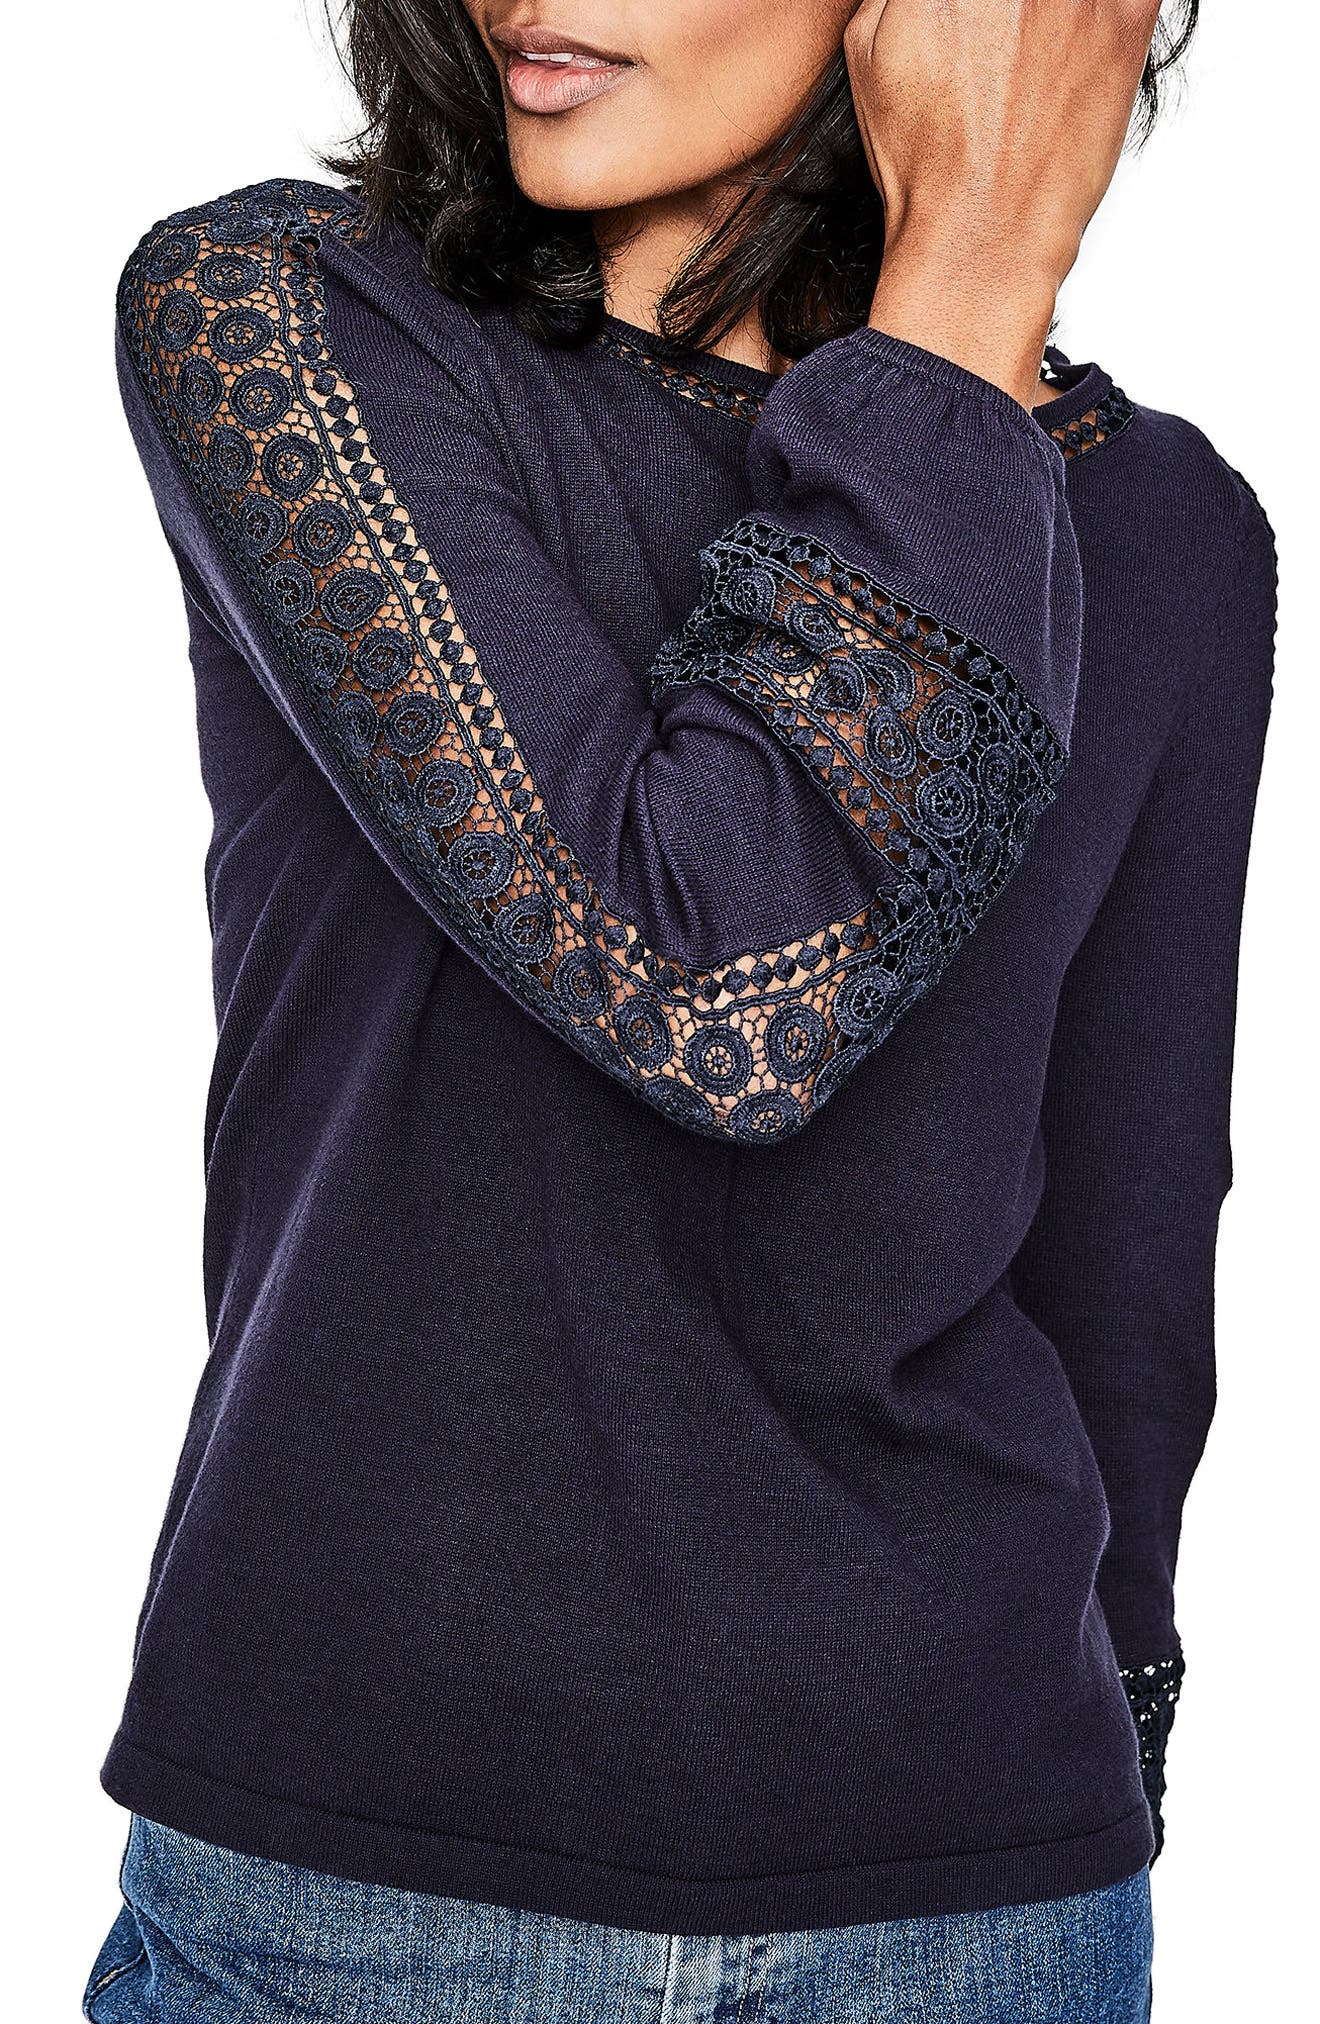 Lace Inset Cotton Sweater,                             Main thumbnail 1, color,                             414